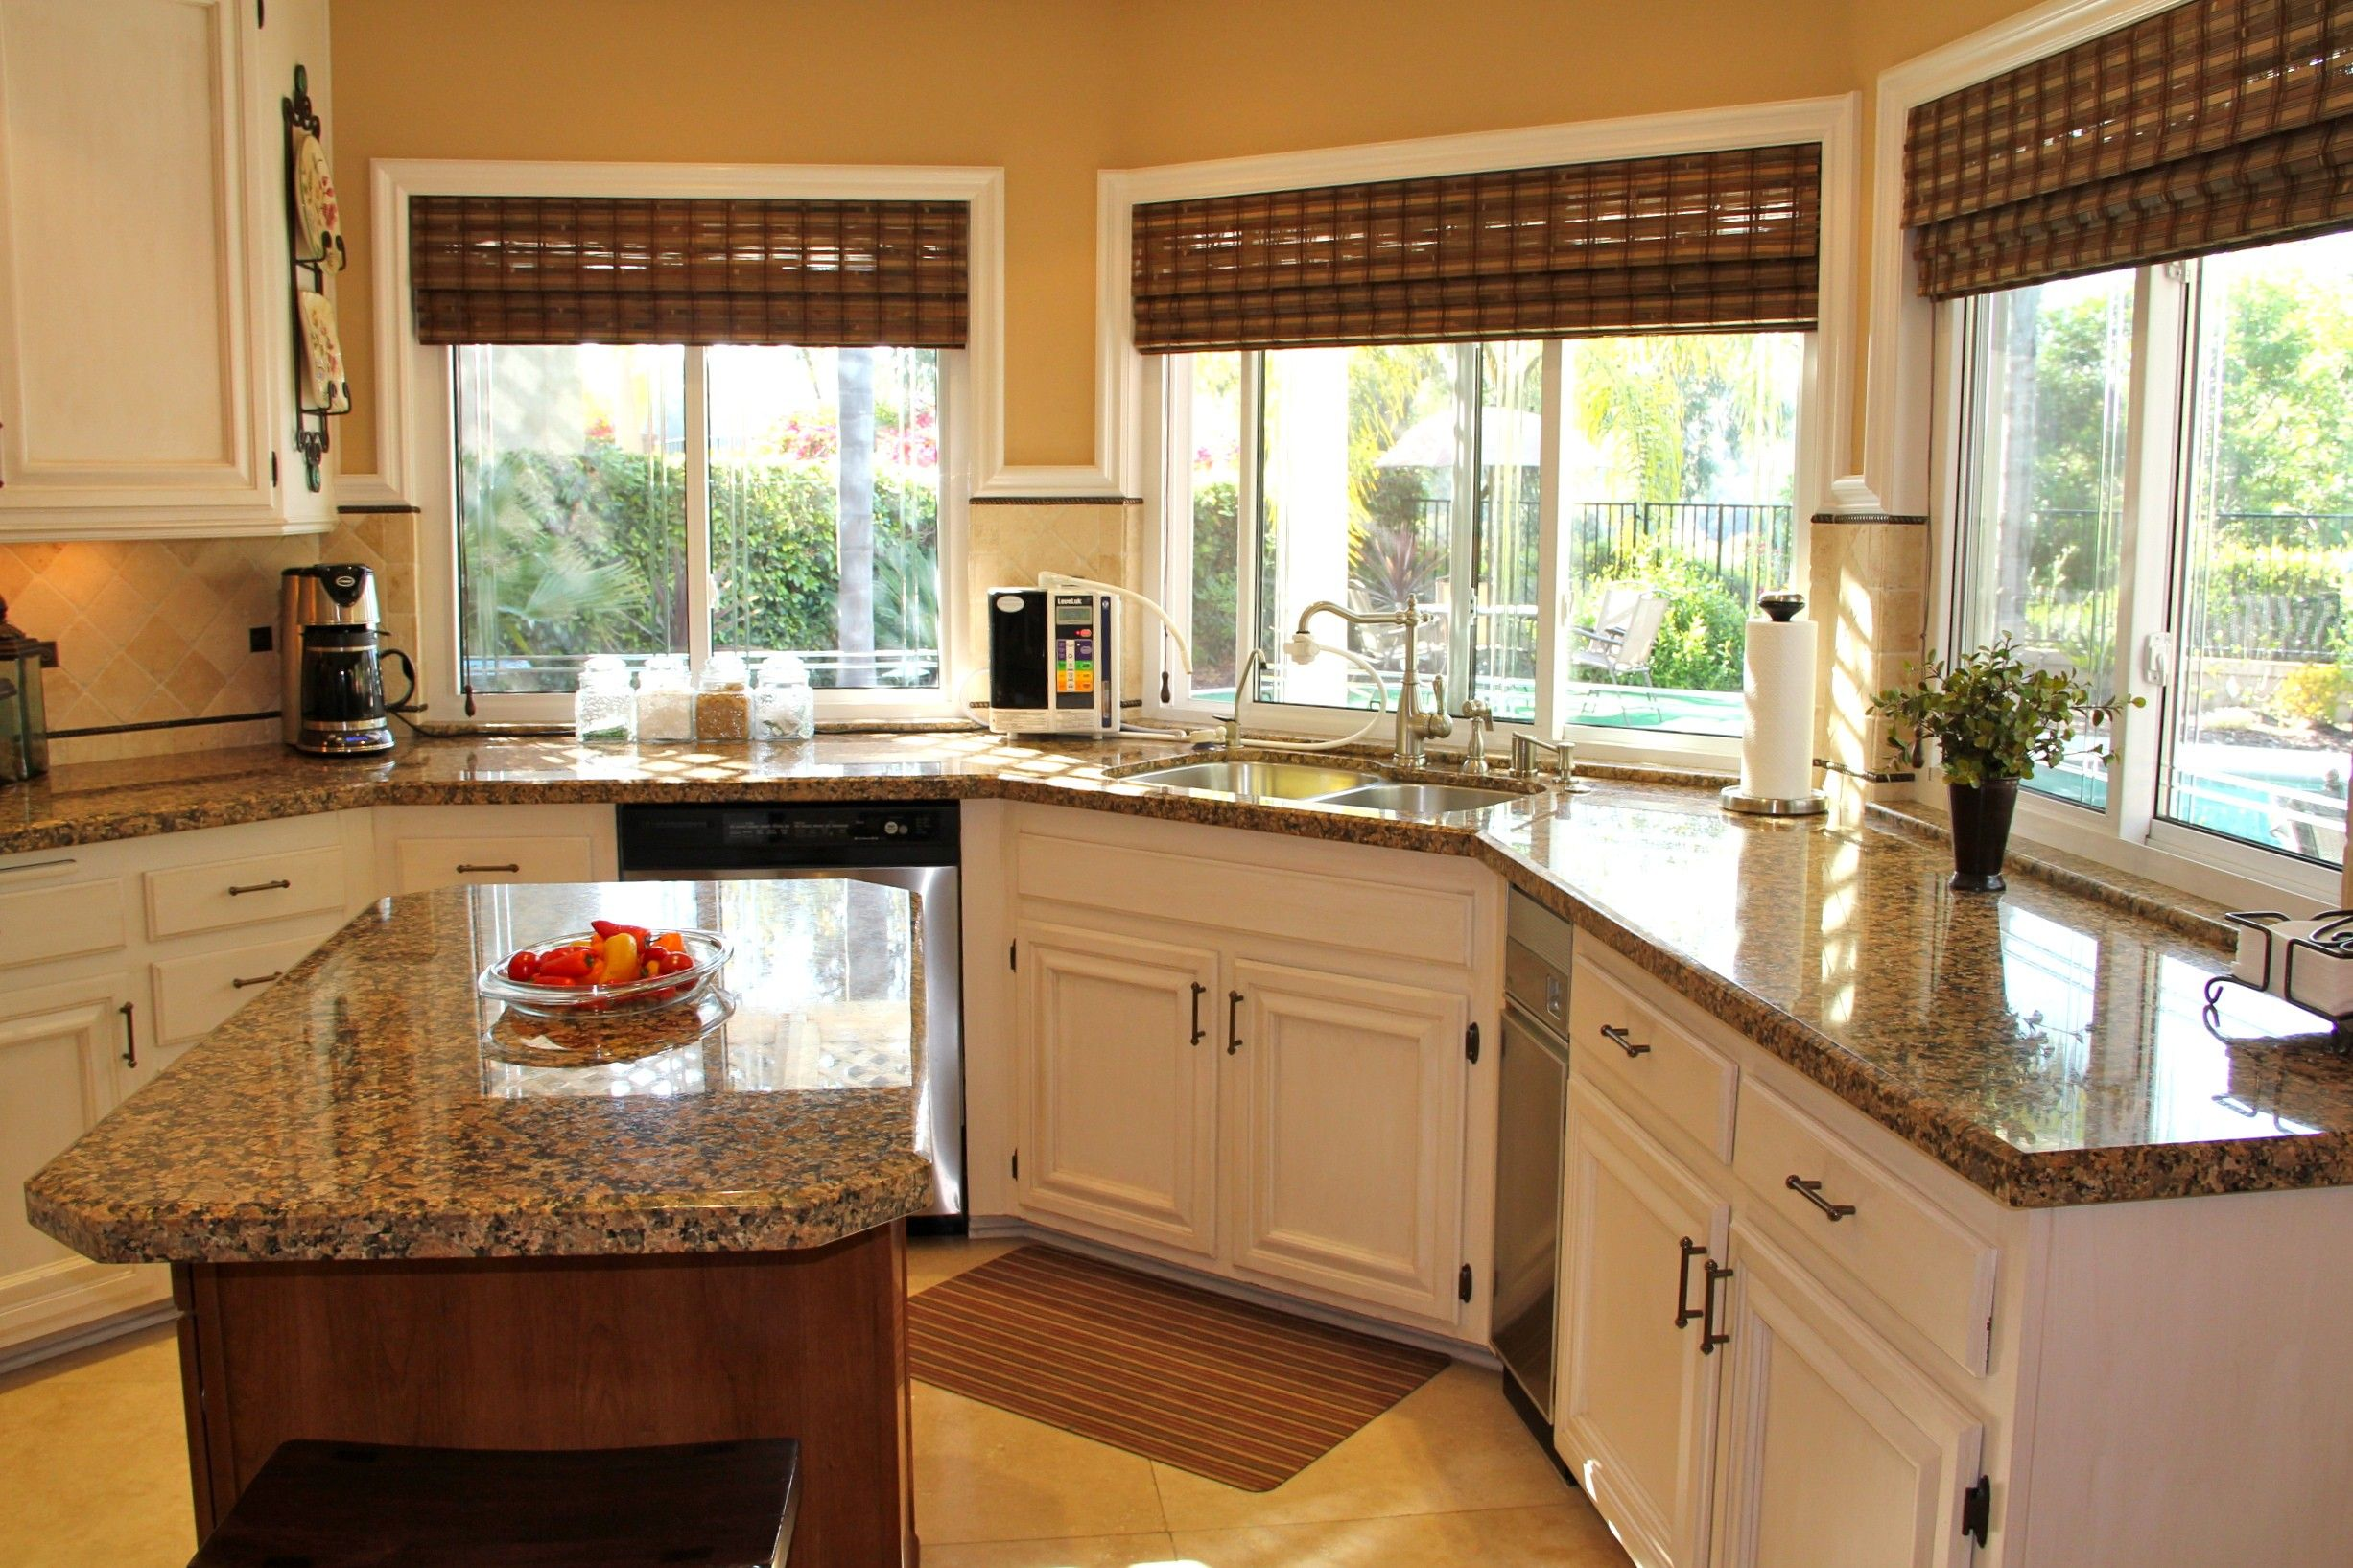 Ordinaire Curtains For Kitchen Windows Above Sink   Google Search